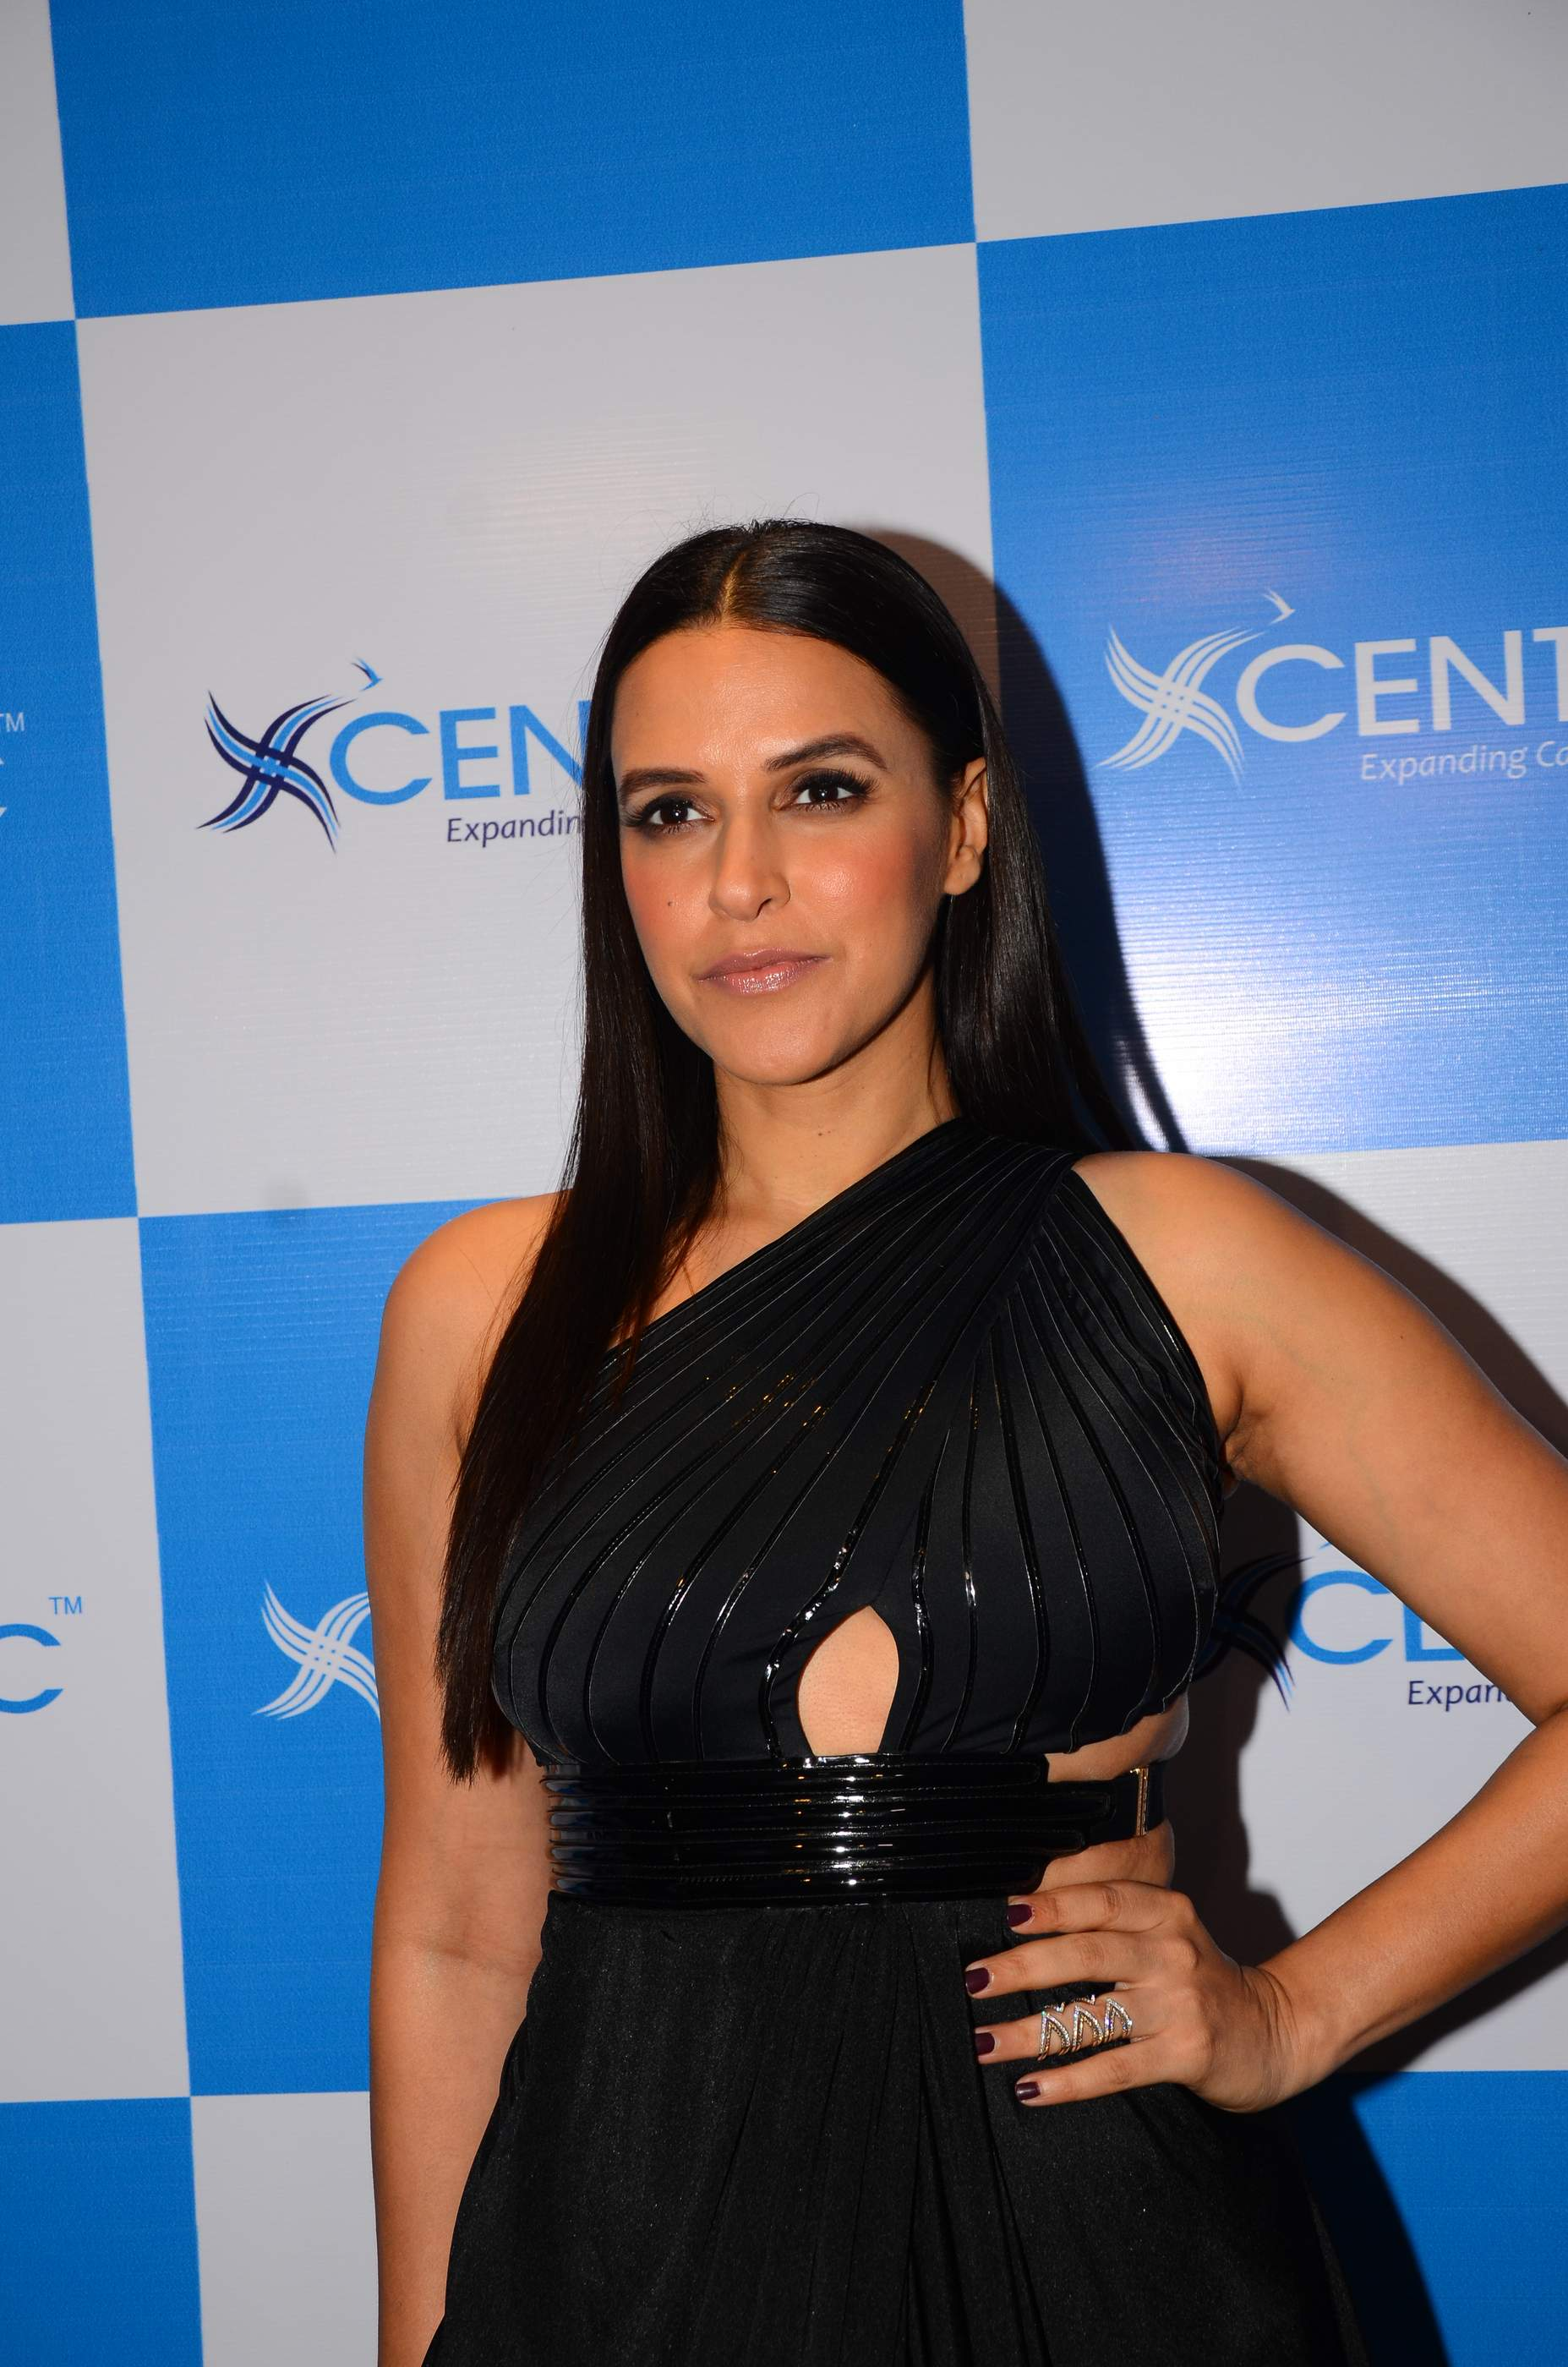 HOT Photo Stills Of Beauty Queen Neha Dhupia | Xcentric HOT Photo Stills Of Beauty Queen Neha Dhupia | Xcentric Neha Dhupia Xcentric 9